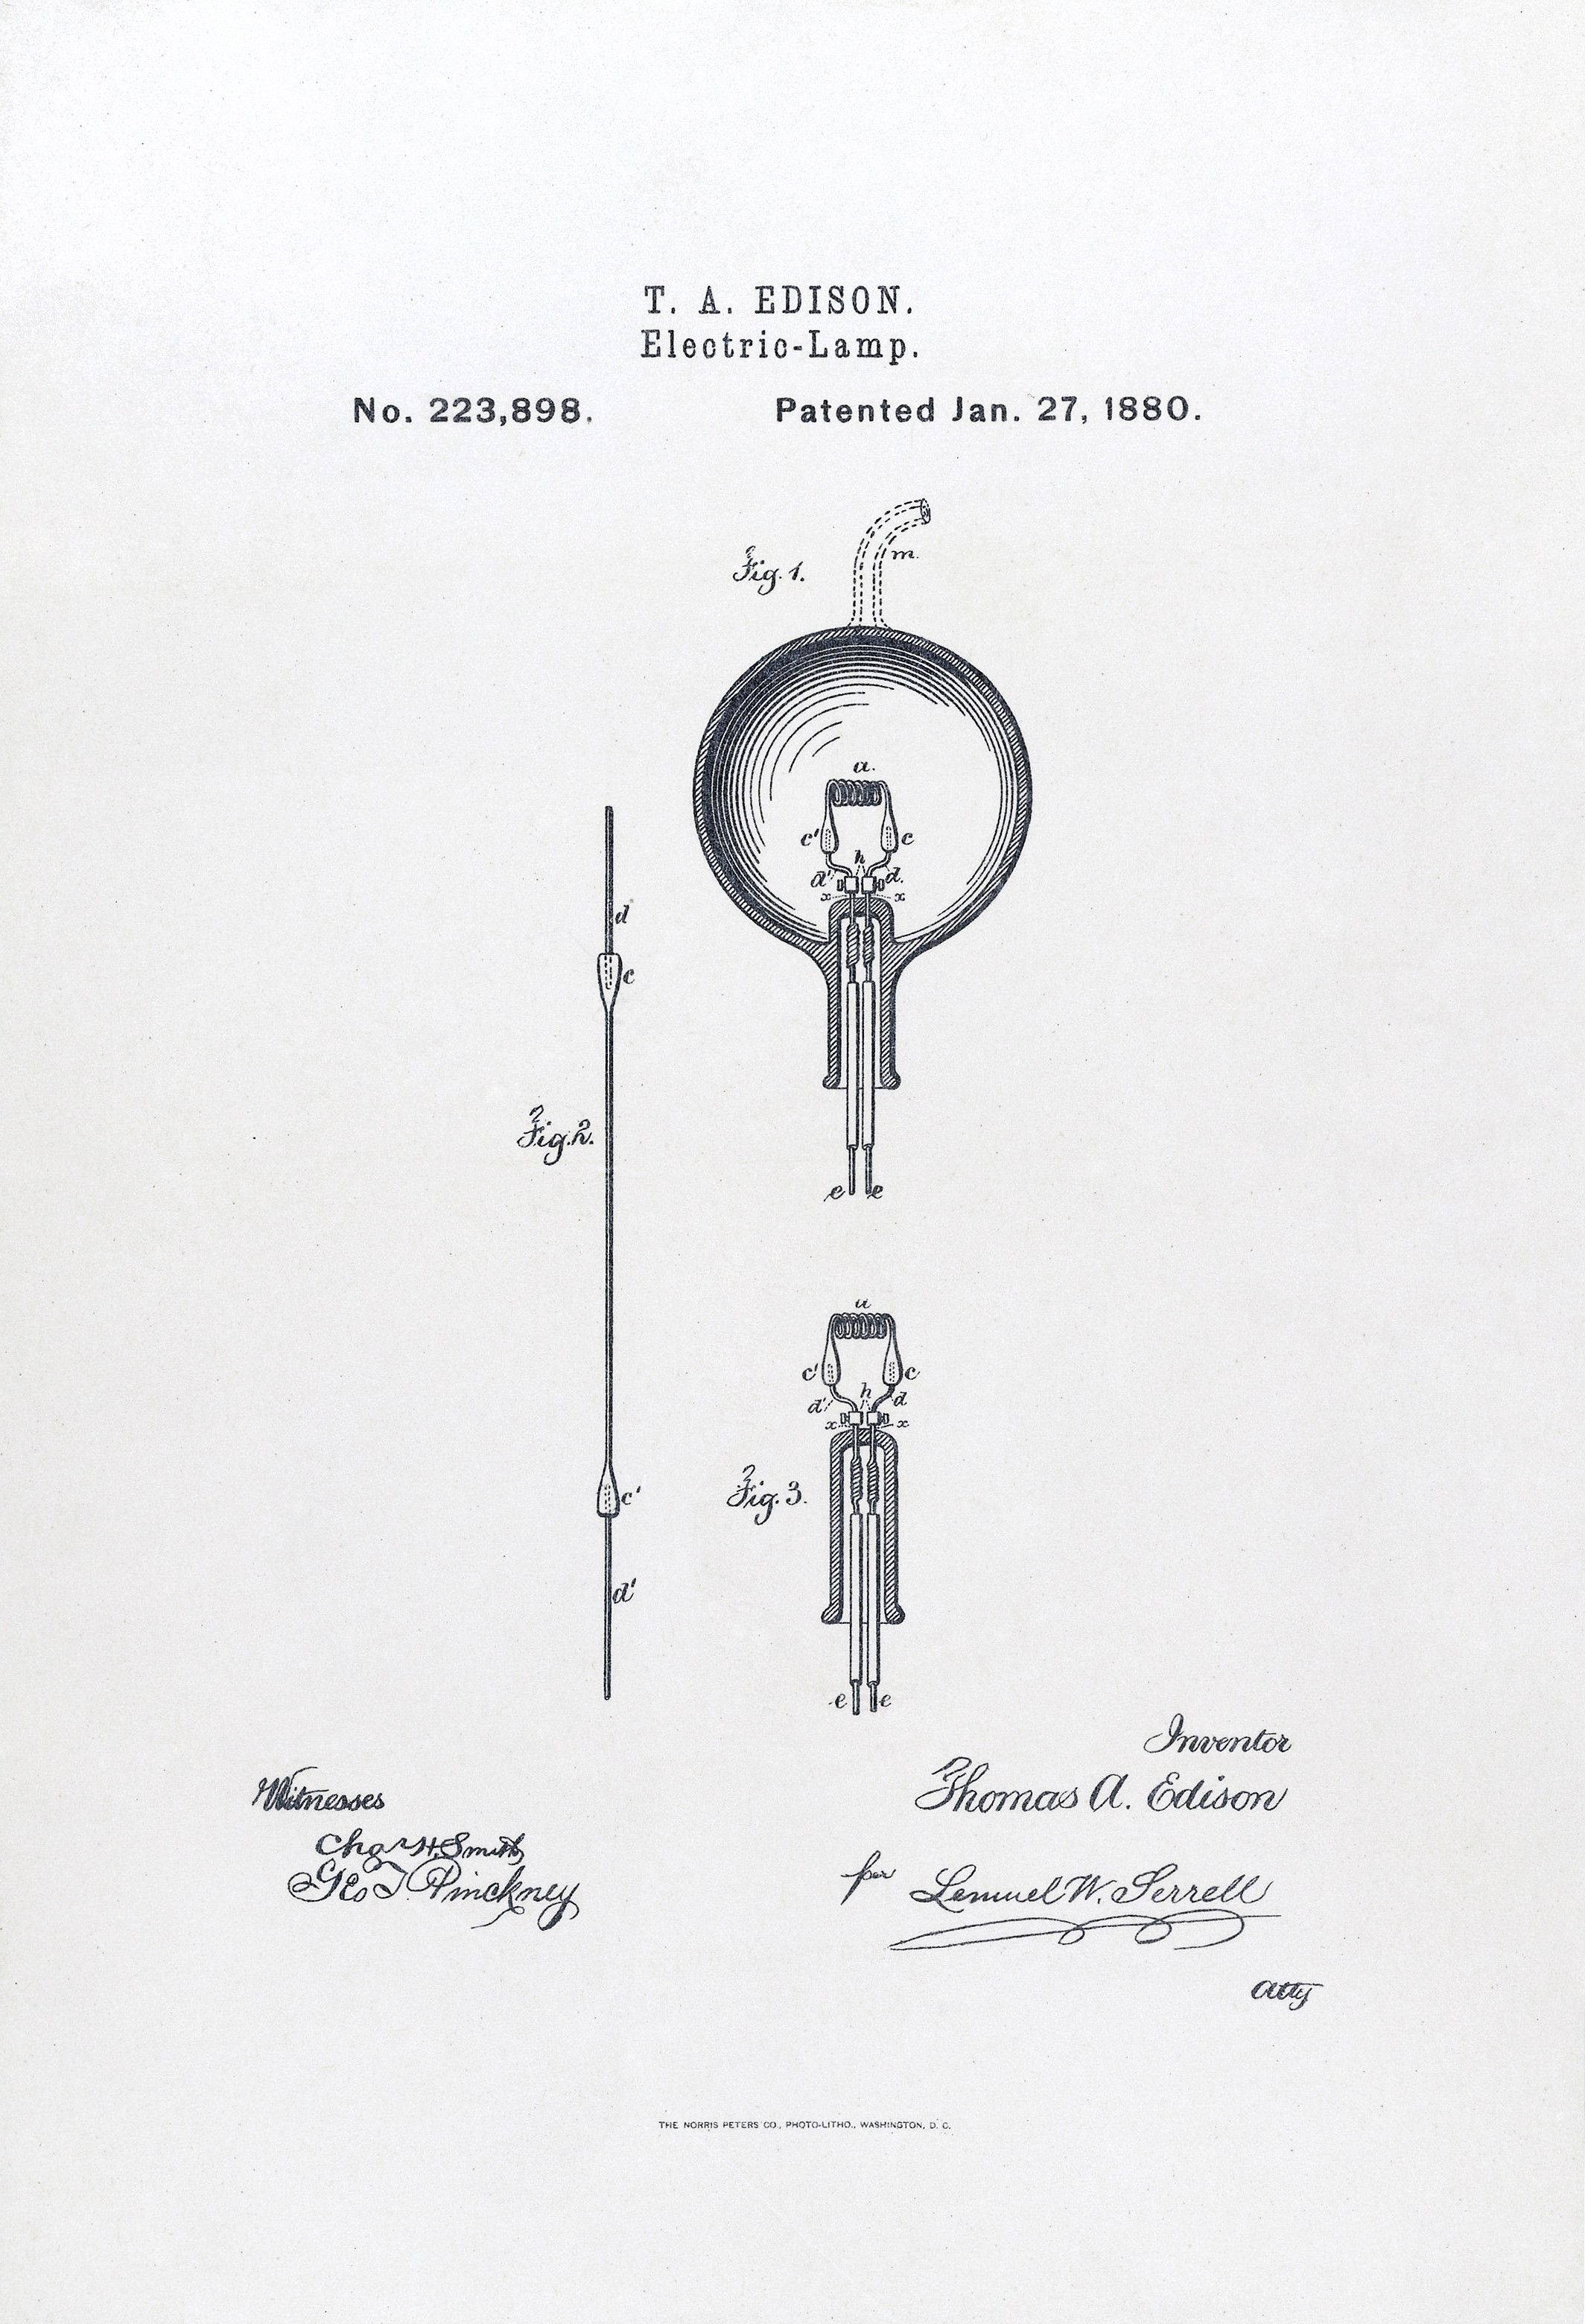 Thomas Edison Wikipedia Wiring Diagrams For Kob Us Patent223898 Electric Lamp Issued January 27 1880